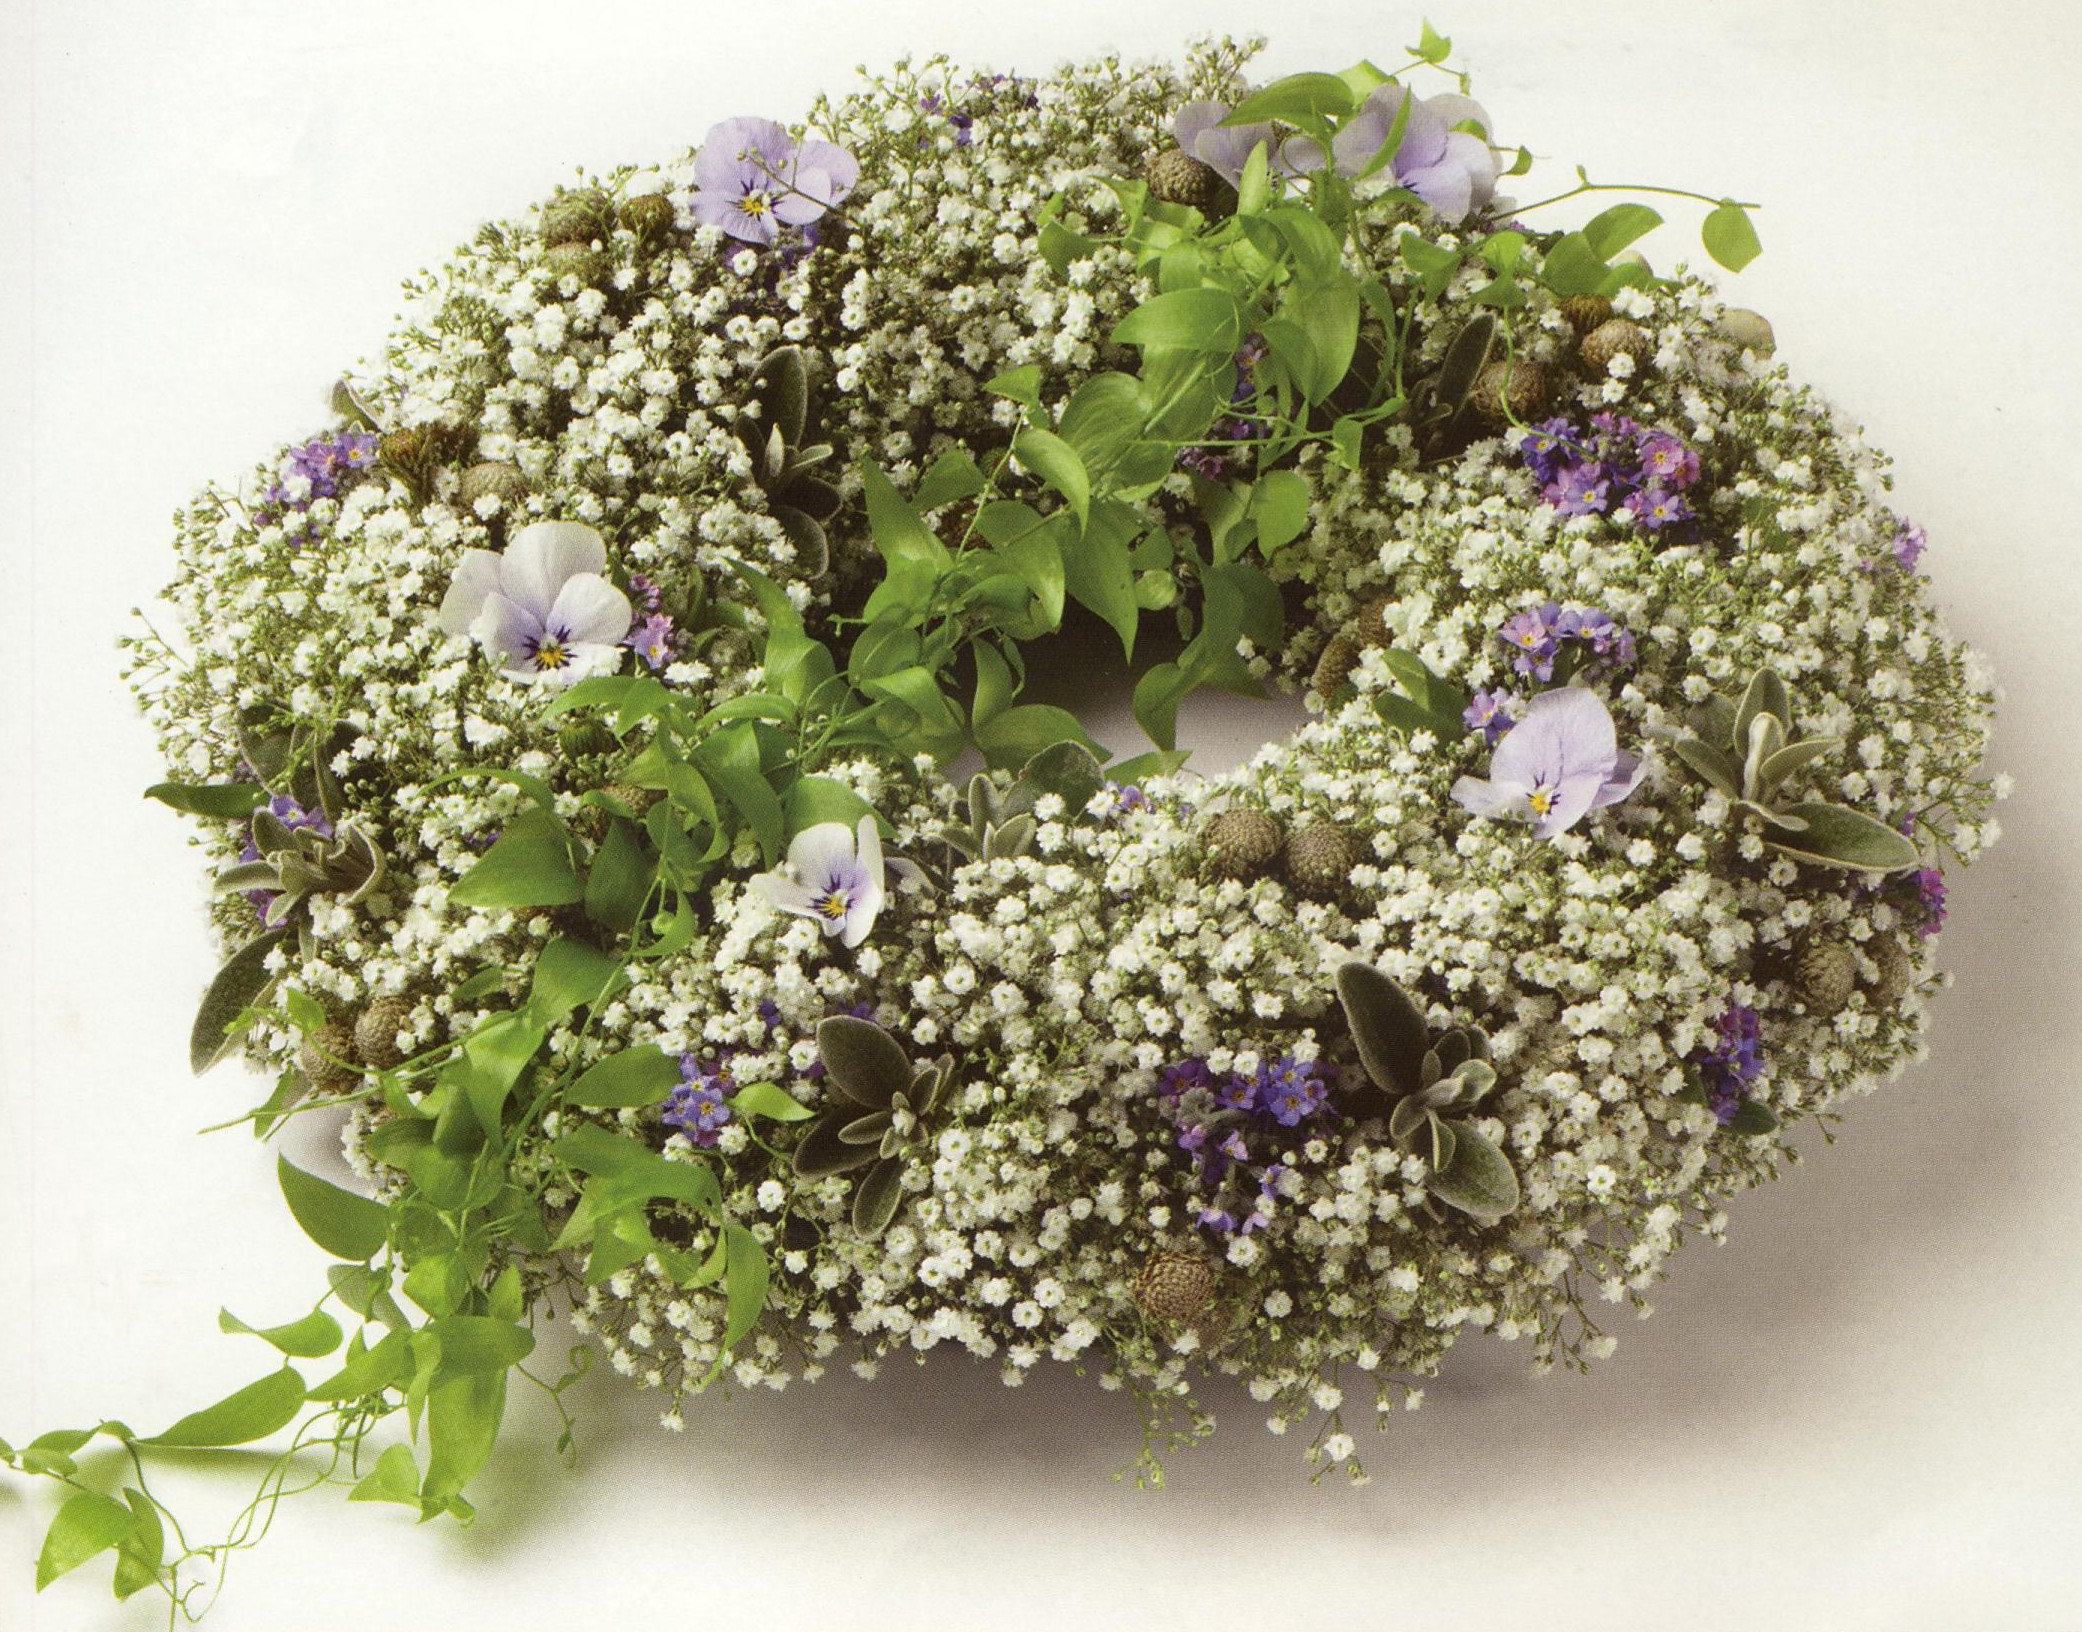 Funeral wreaths hertfordshire funeral florist gypsophila and violets funeral wreath 14 izmirmasajfo Choice Image